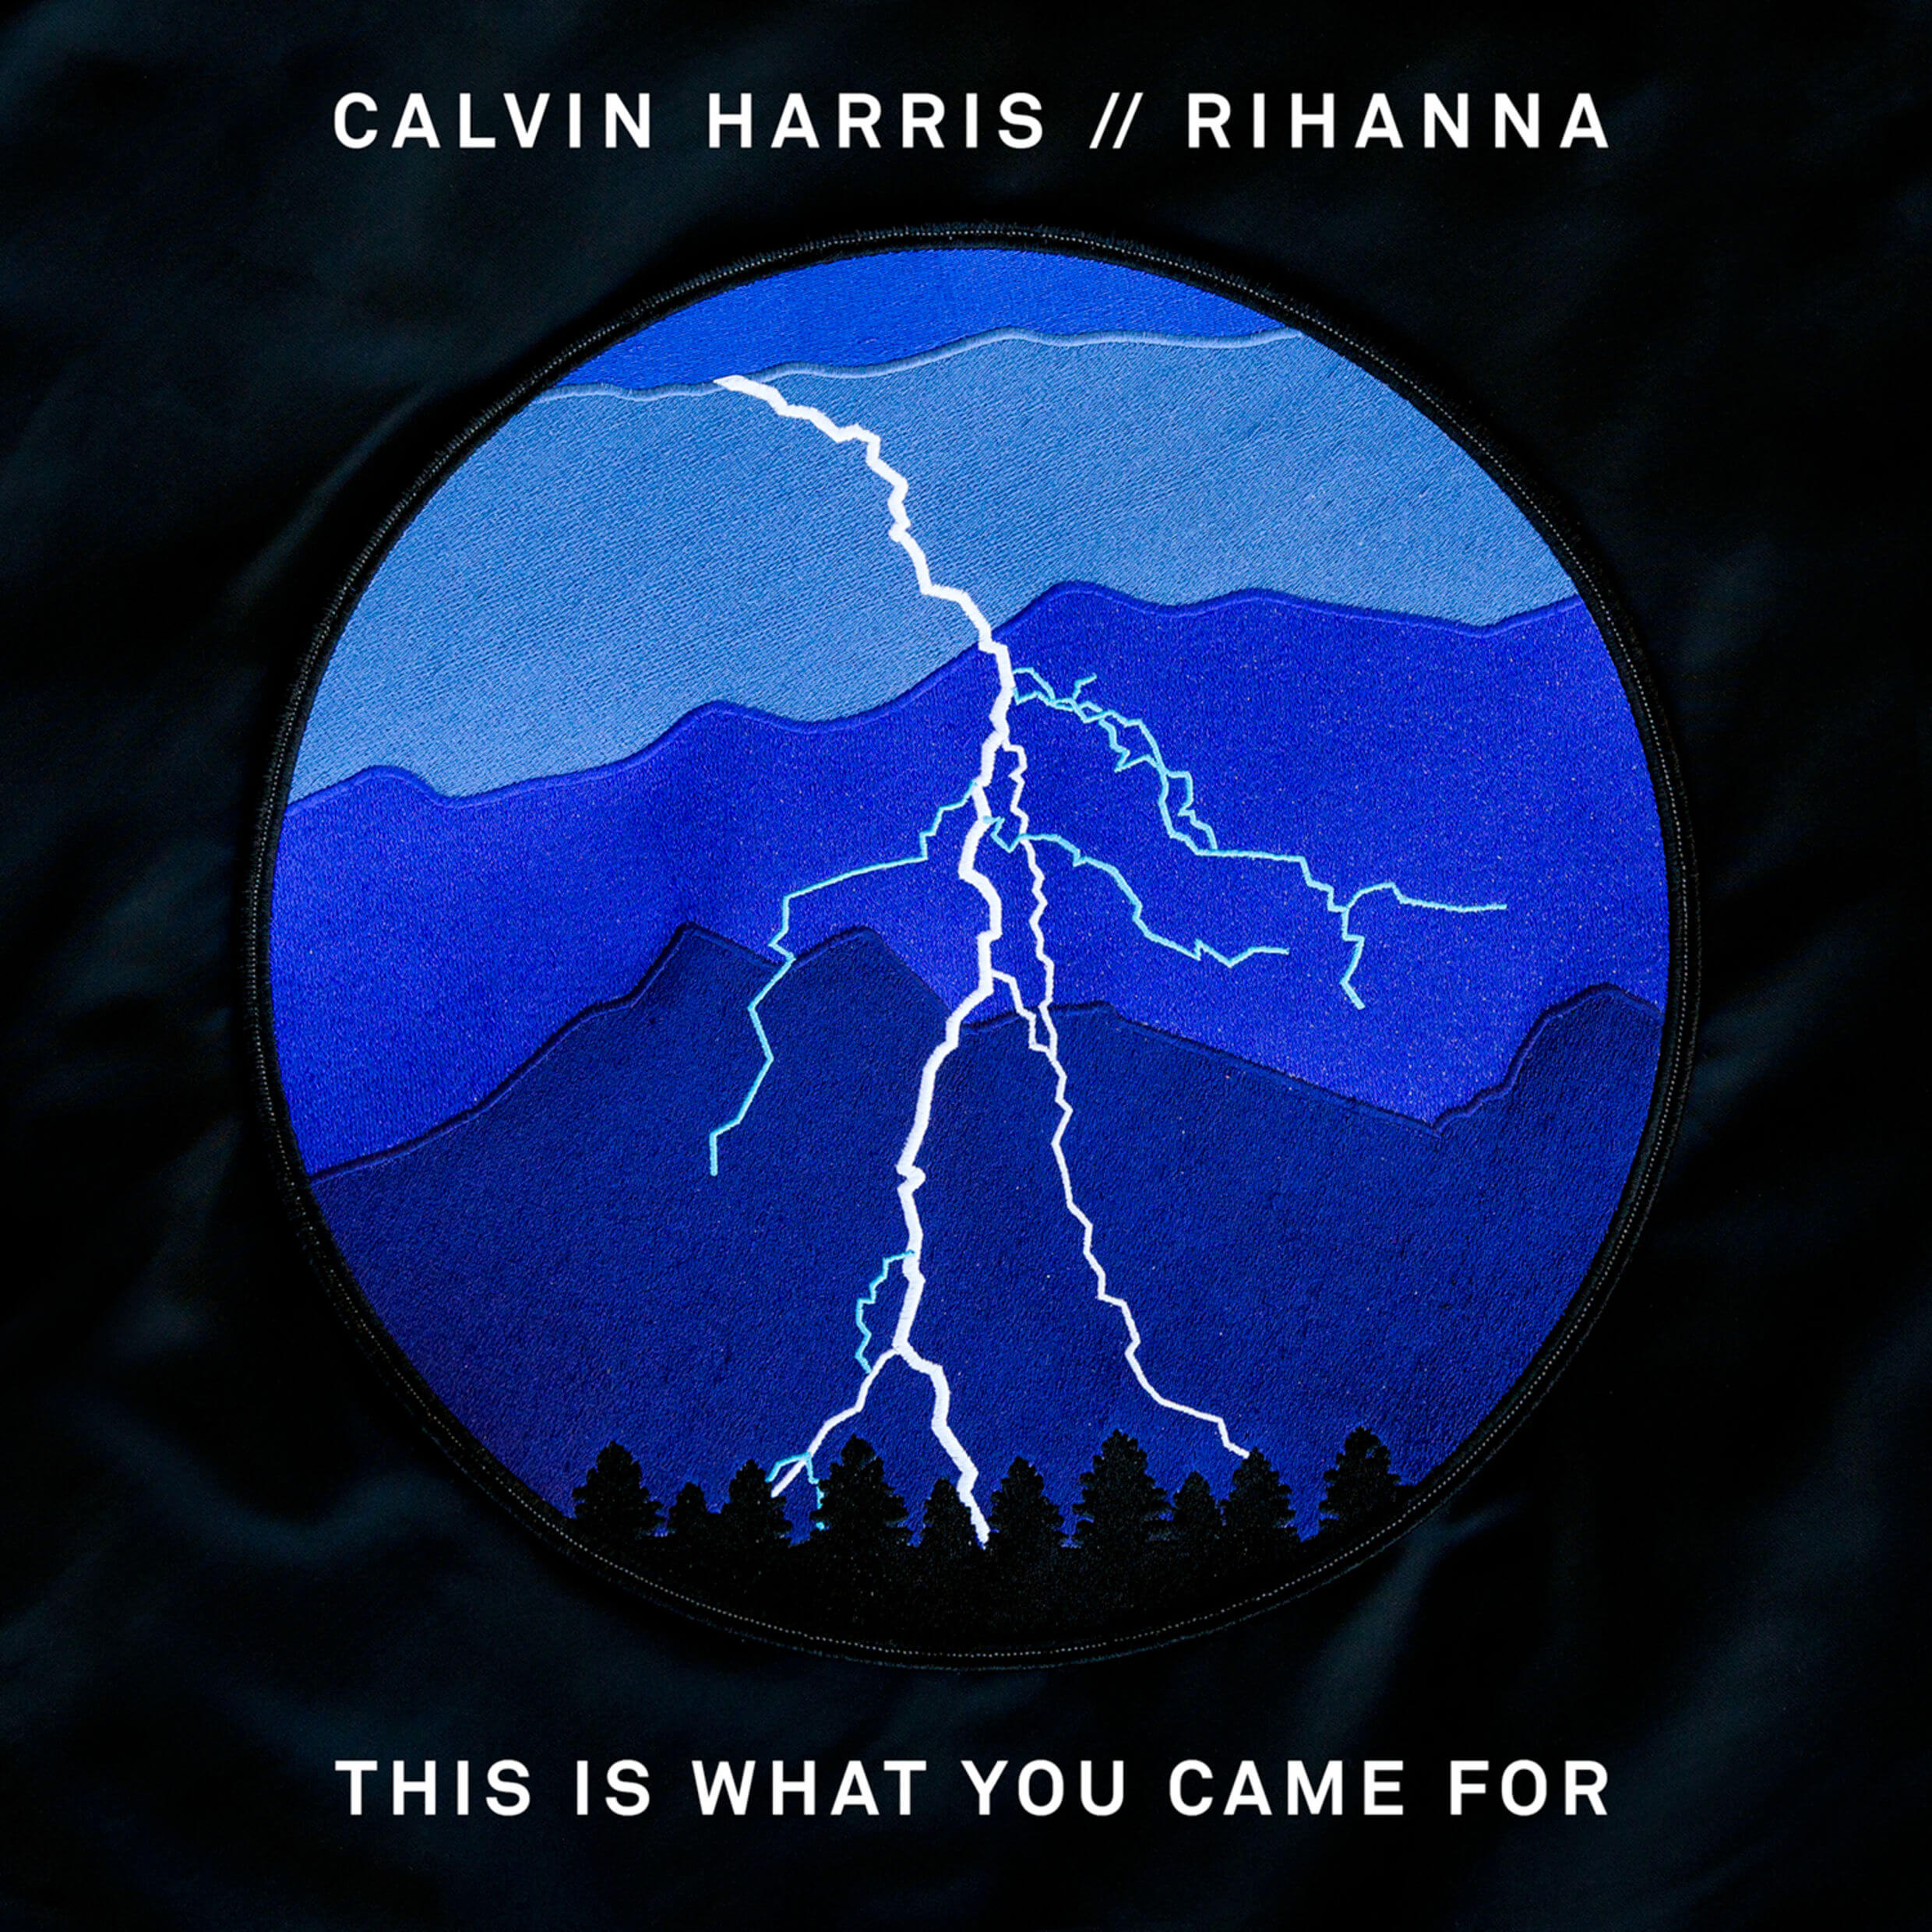 rihanna_e_calvin_harris_this_is_what_you_came_for